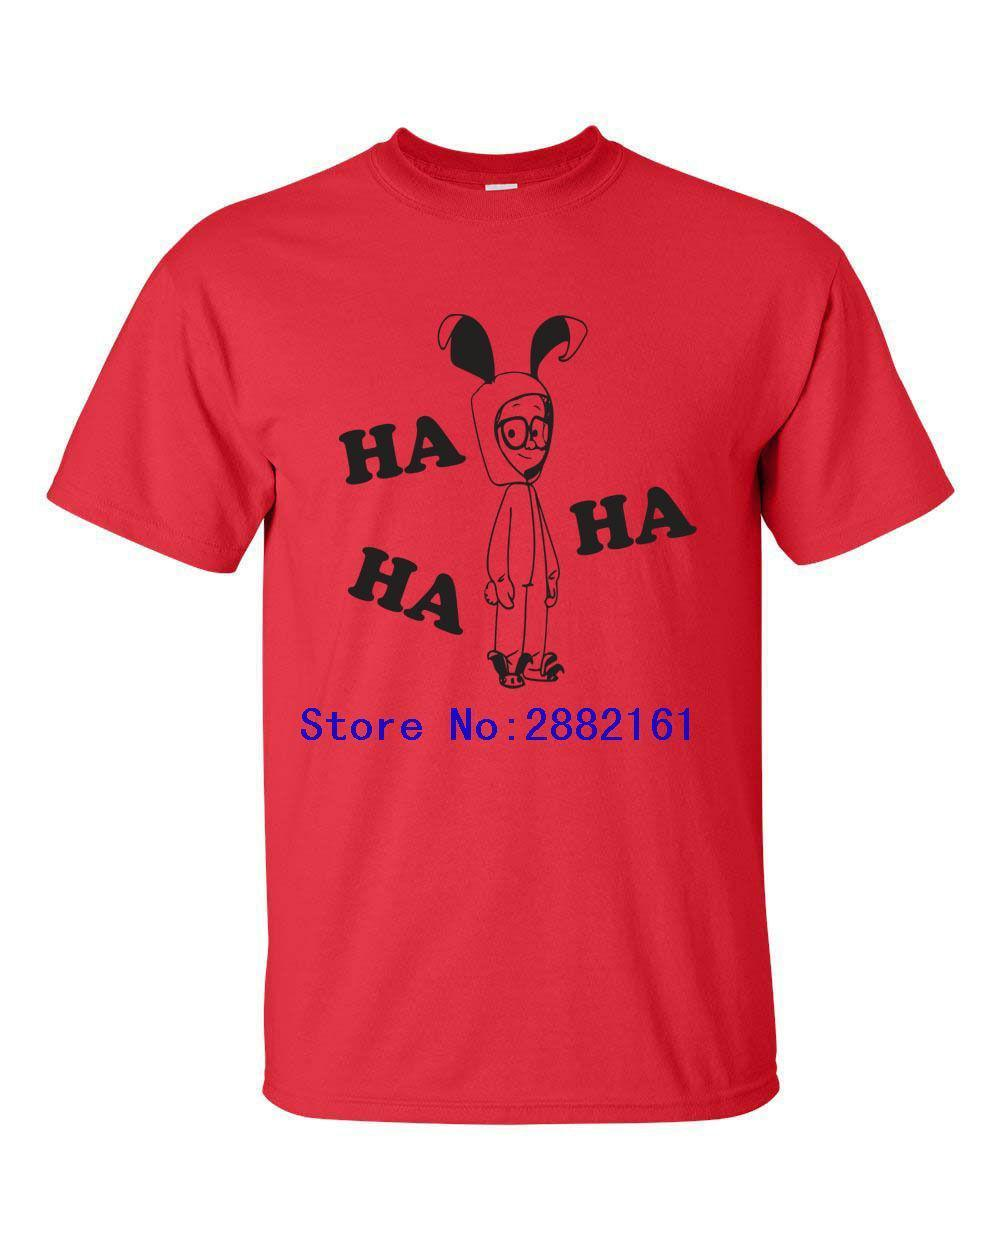 a christmas story nightmare ralphie bunny suit ha ha ha mens tee shirt print t shirt male brand clothes t shirt crazy t shirts designs from liguo0021